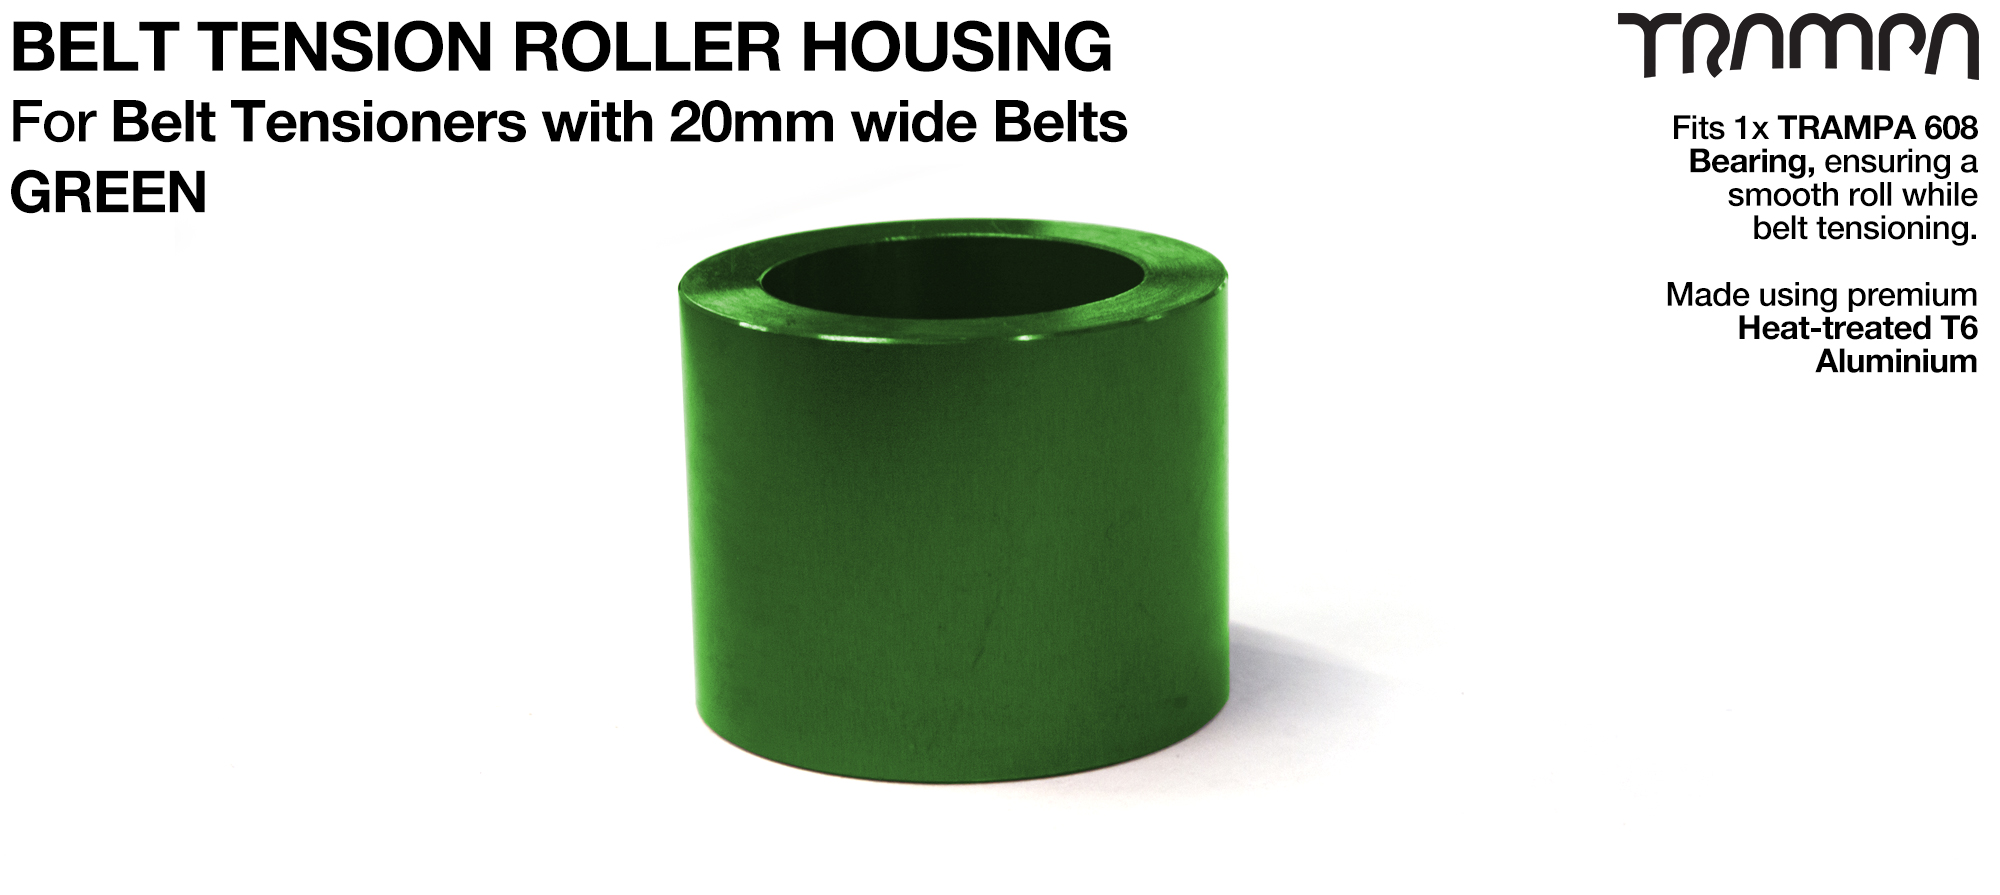 Belt Tension Roller Housing for 20mm Belts - GREEN